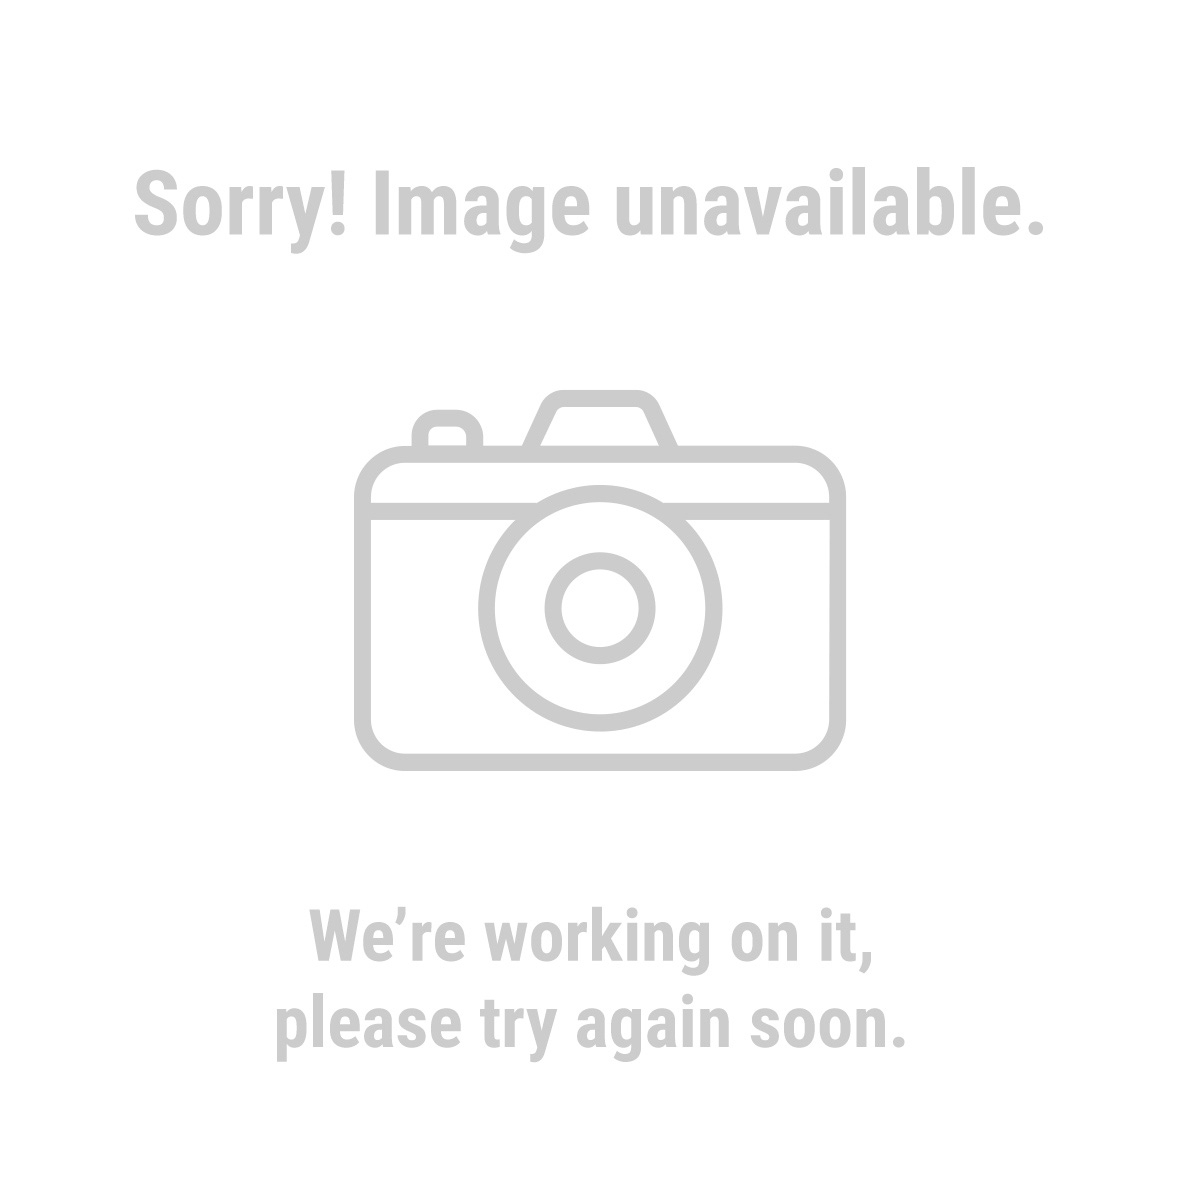 Pittsburgh® 62412 165 ft. x 1/2 in. Measuring Tape